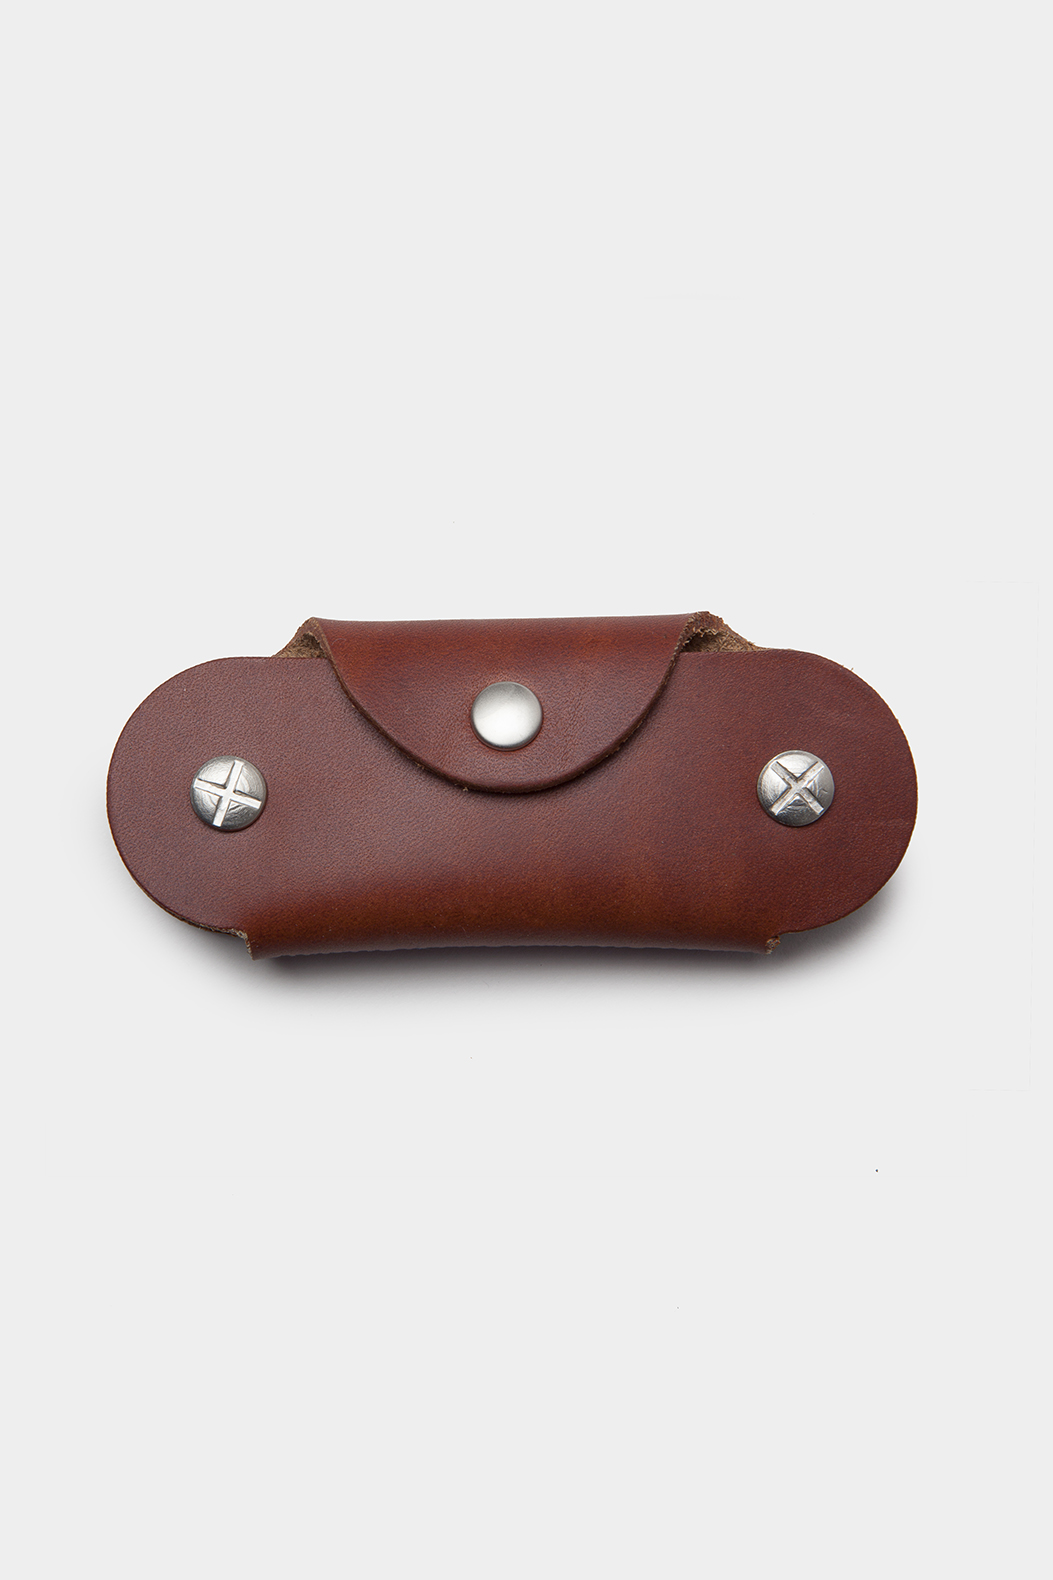 Key Case handcrafted in Spain.